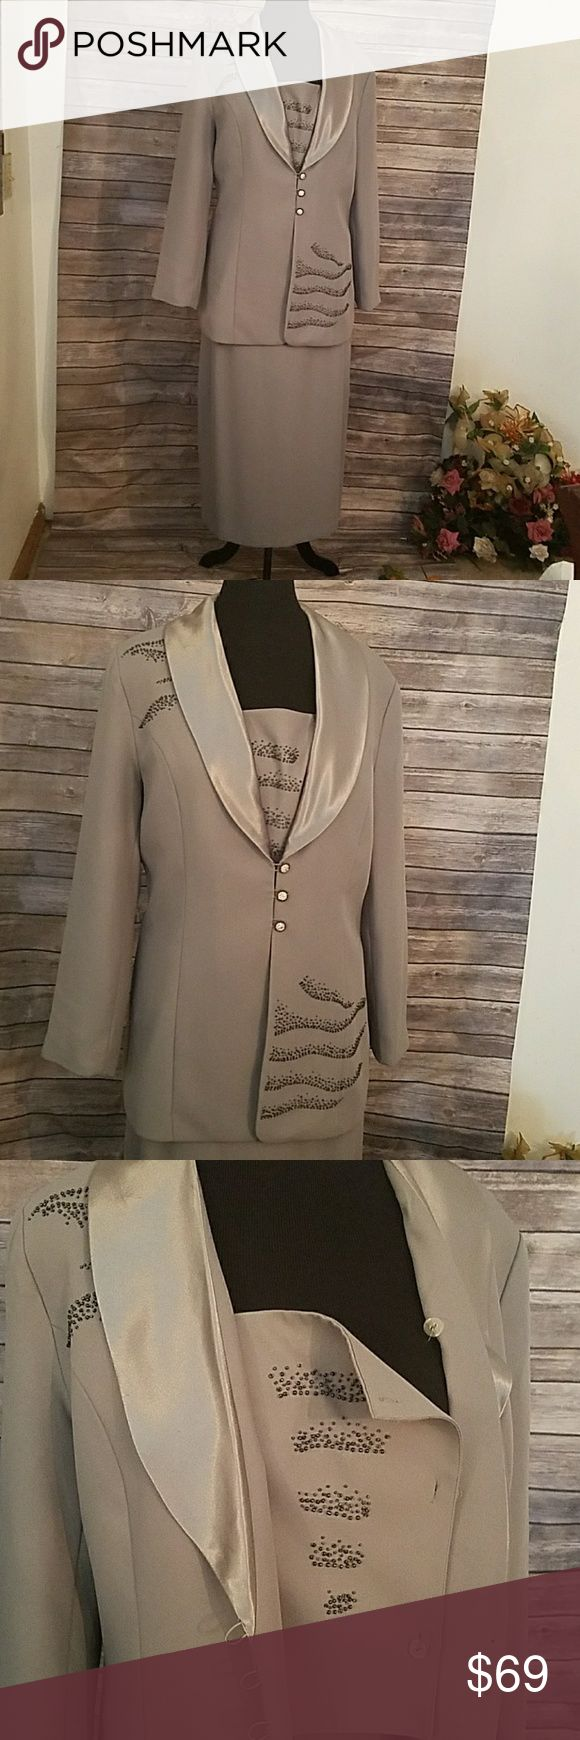 Nicole Studio Grey Two Piece Skirt Set 100% Polyester. Fully Lined.Dry Clean. Jacket has a detachable bib.Satin collar. 3 Rhinestone Button. Grey beads embedded throughout Jacket. The Skirt has a back zipper with one button. The Skirt has elastic side waistband and a back slit.Padded Shoulders Nicole Studio Skirts Skirt Sets